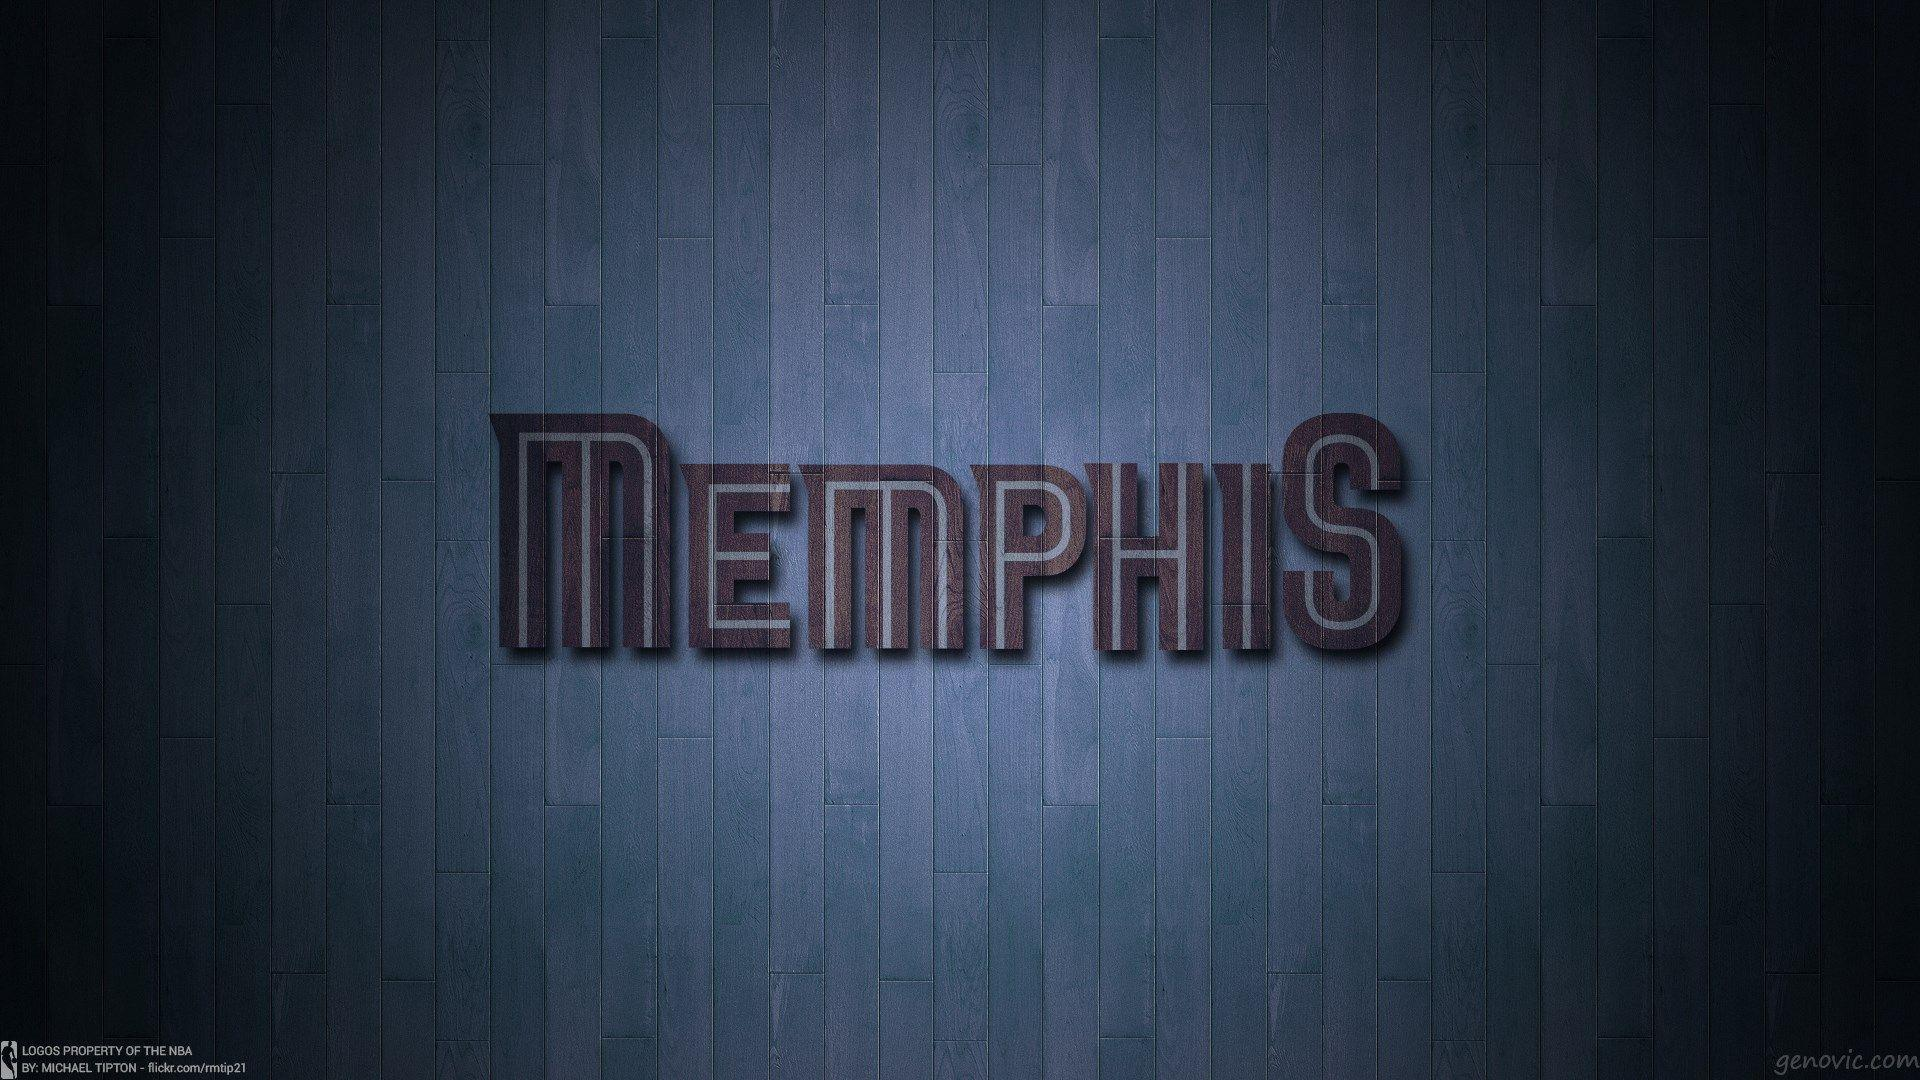 MEMPHIS GRIZZLIES nba basketball (8) wallpaper | 1920x1080 ...